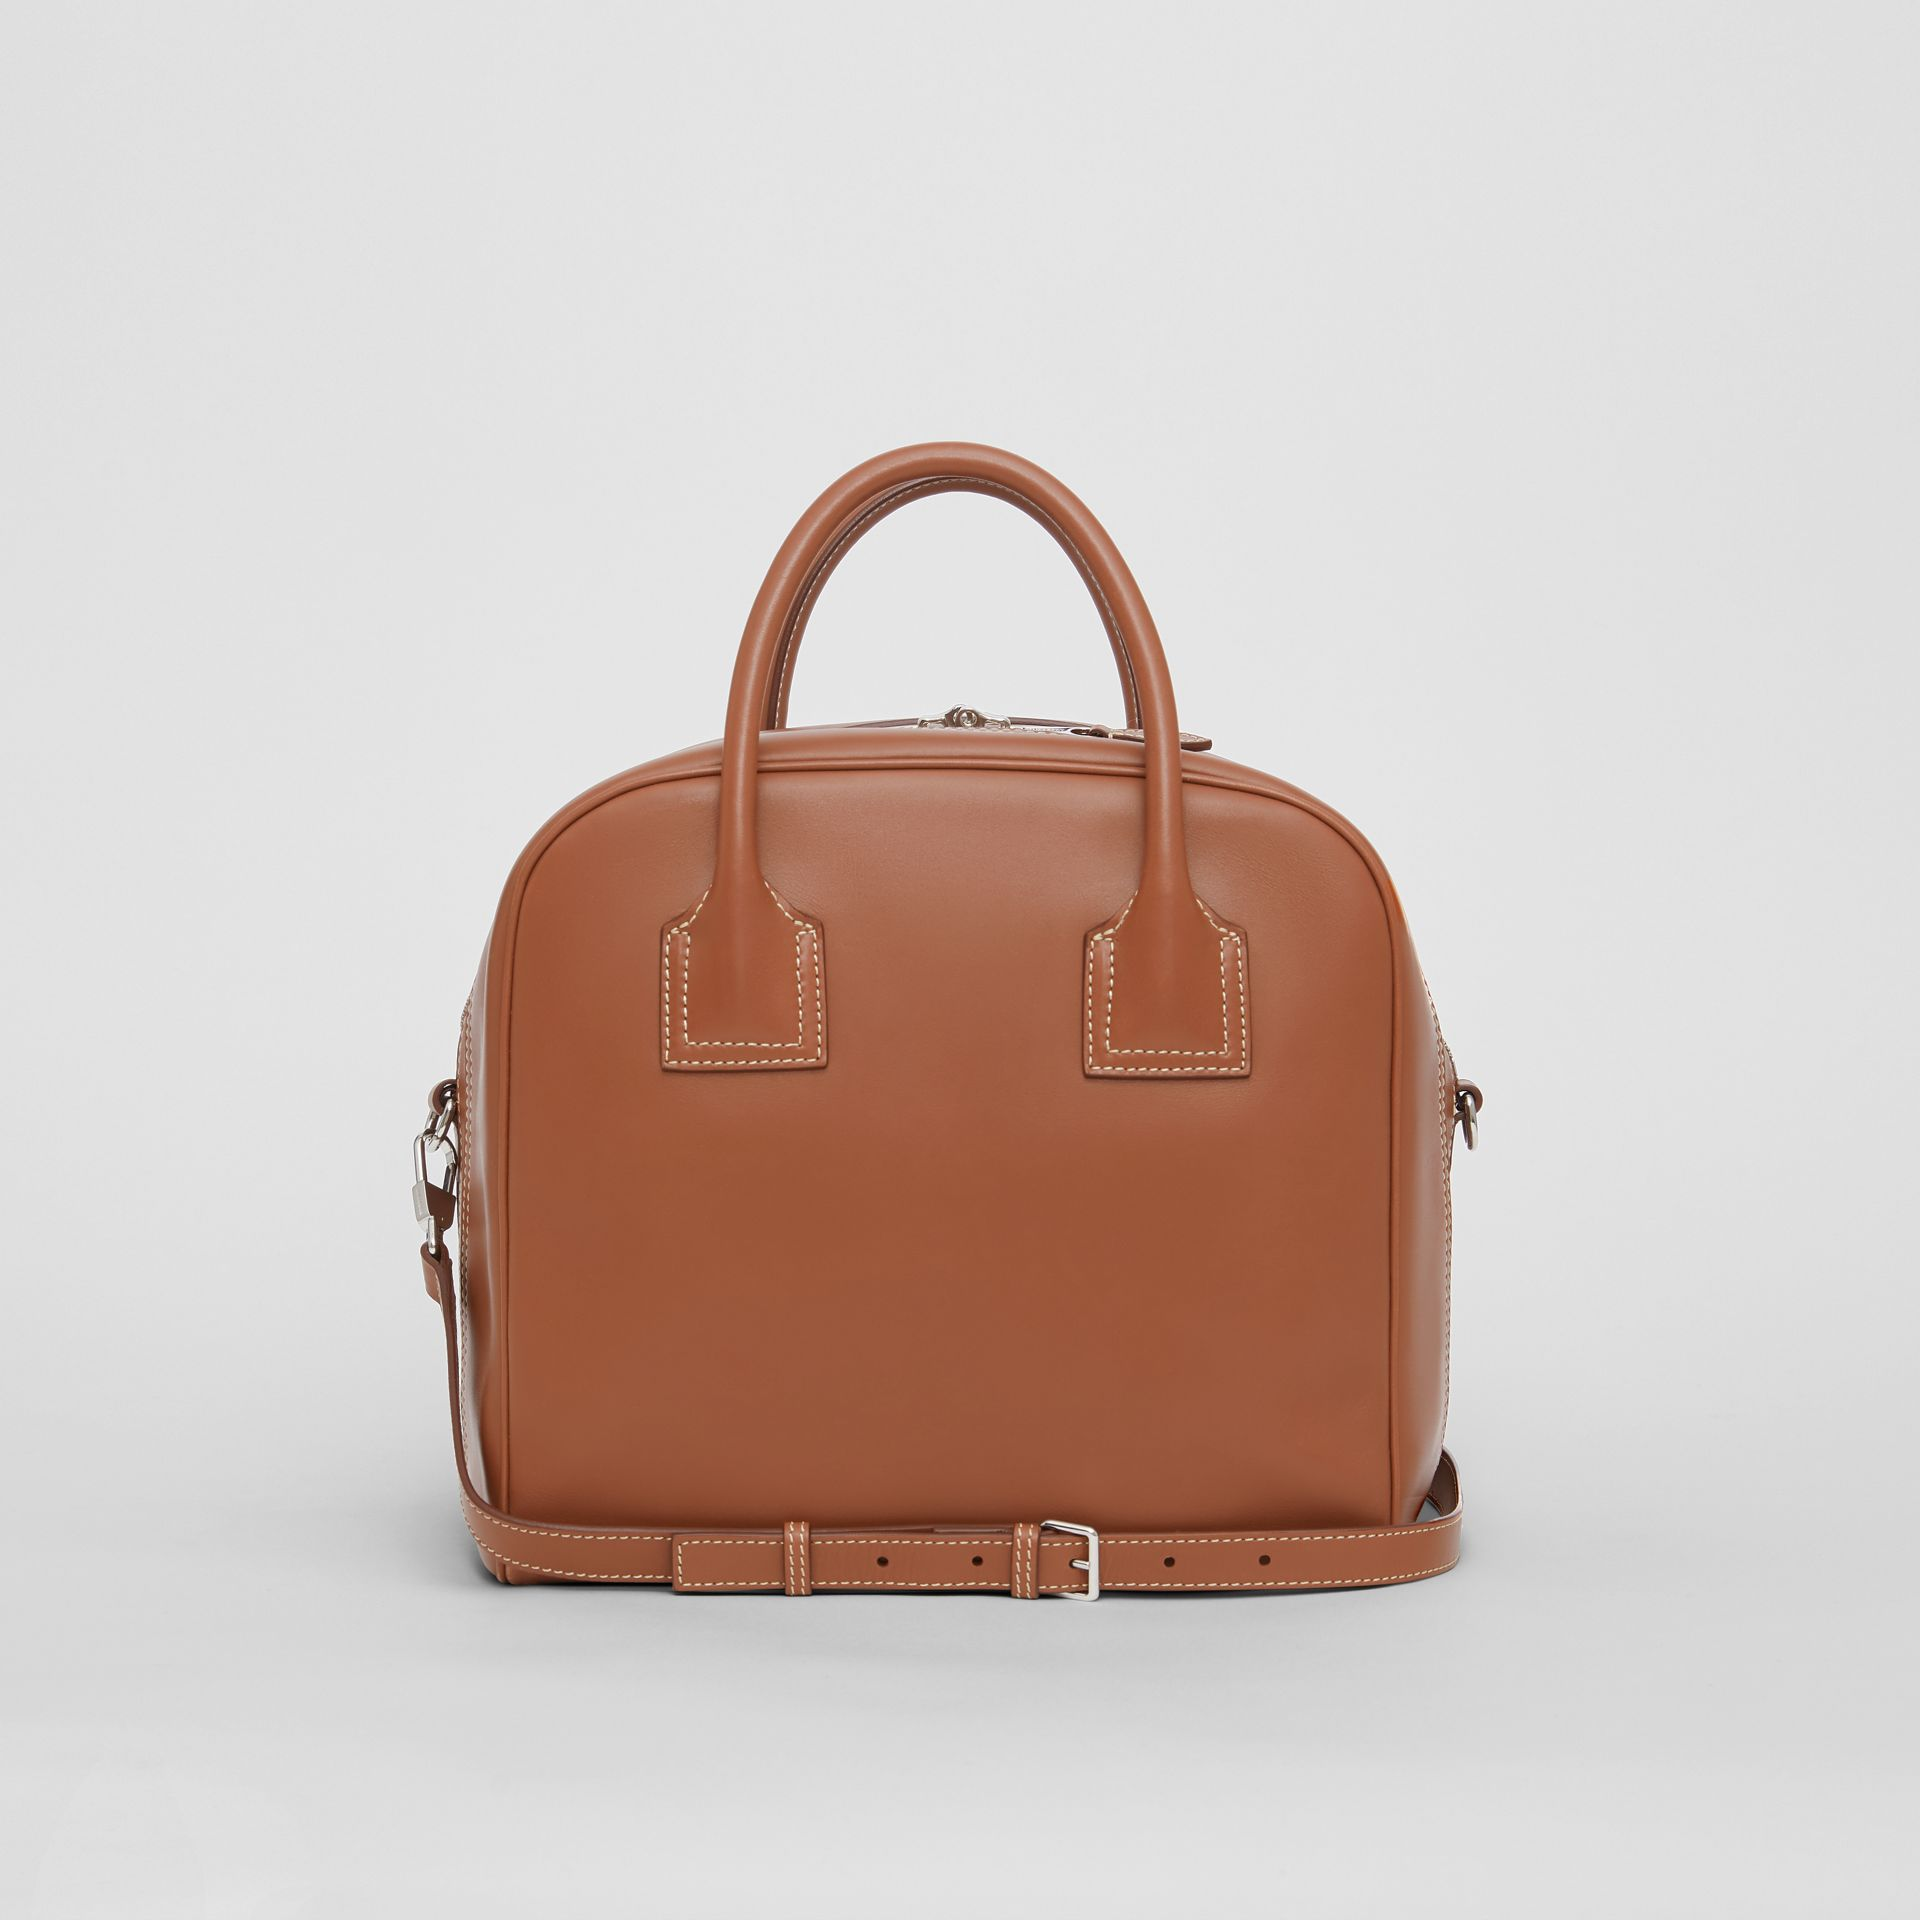 Medium Leather Cube Bag in Malt Brown - Women | Burberry Canada - gallery image 7